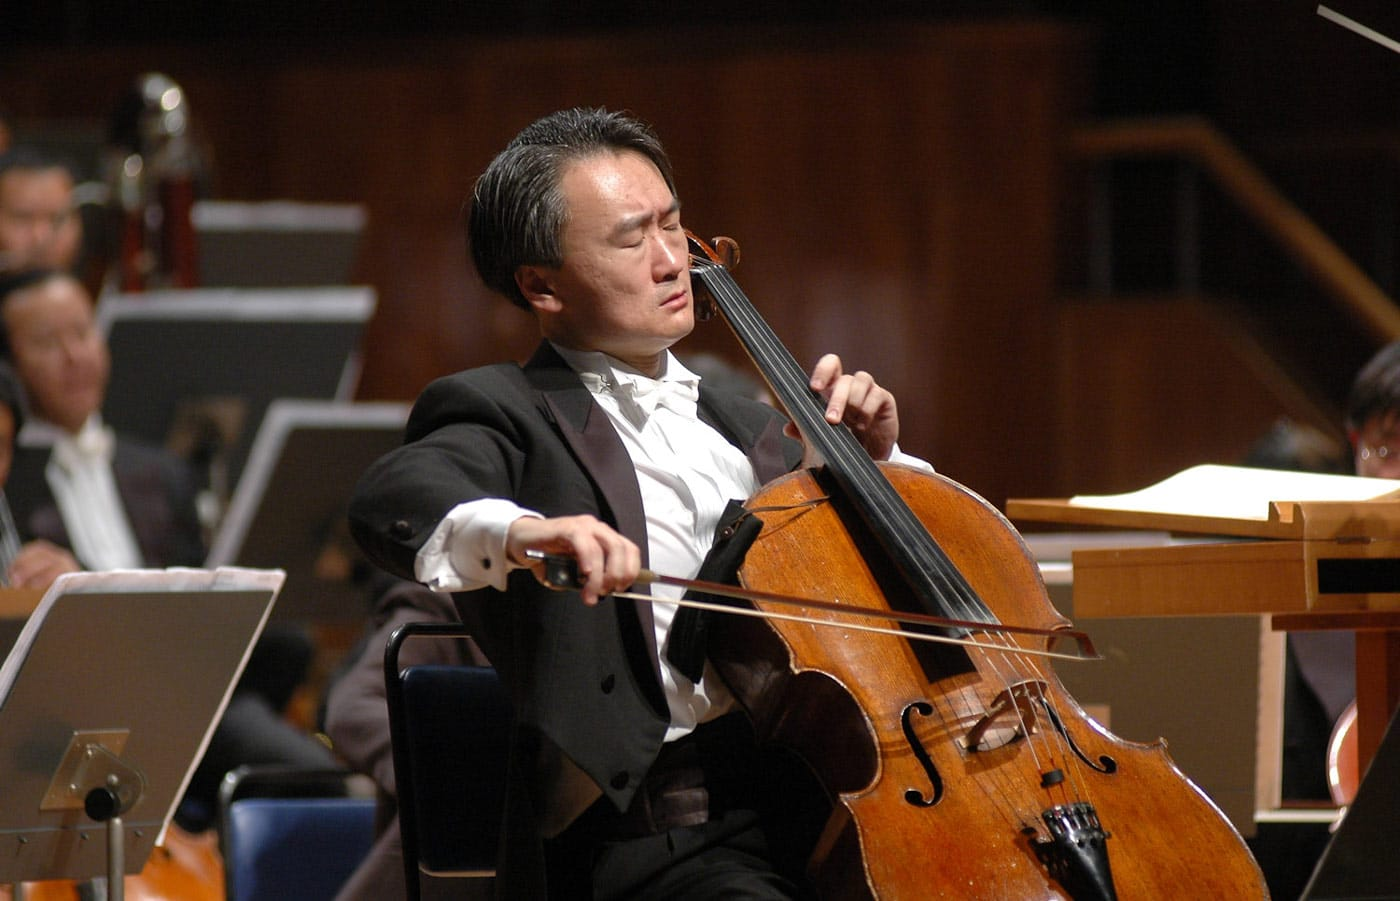 Photo of cellist Jian Wang